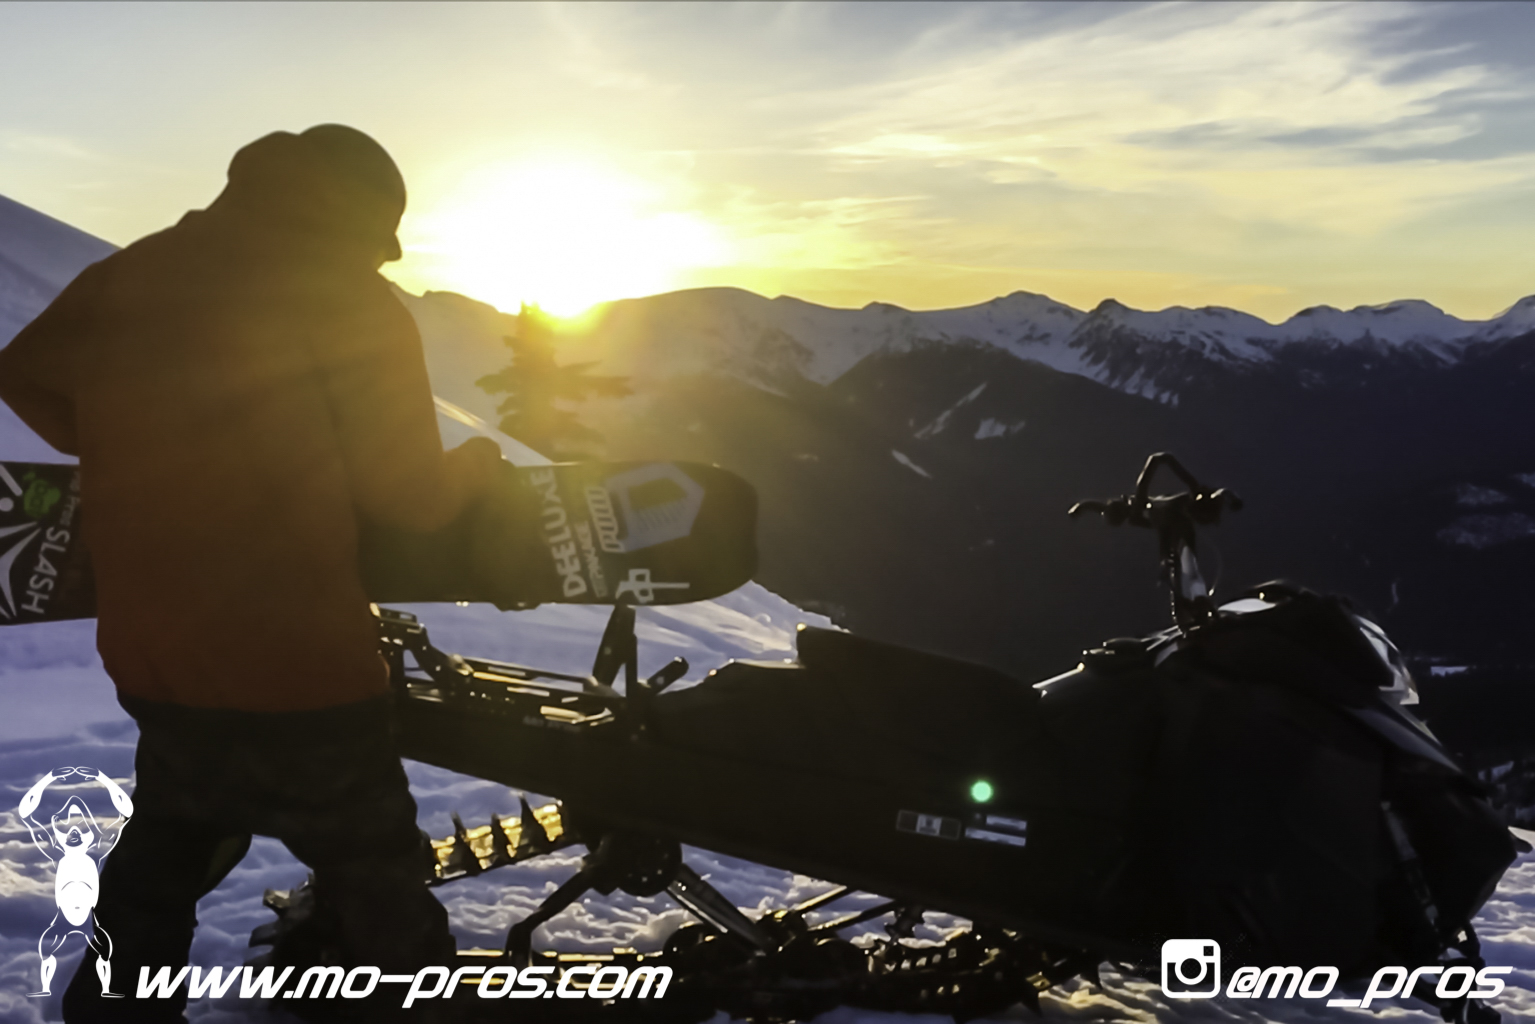 23_Backcountry _Backcountry United_CFR rack_Cheetah Factory Racing_gas Rack_Gear_Gun Rack_LinQ Snowboard Ski_Snowboard rack_snowboard_Snowboarding_snowmobile bag_Snowmobile_timbersled bag_Timbersled .jpg